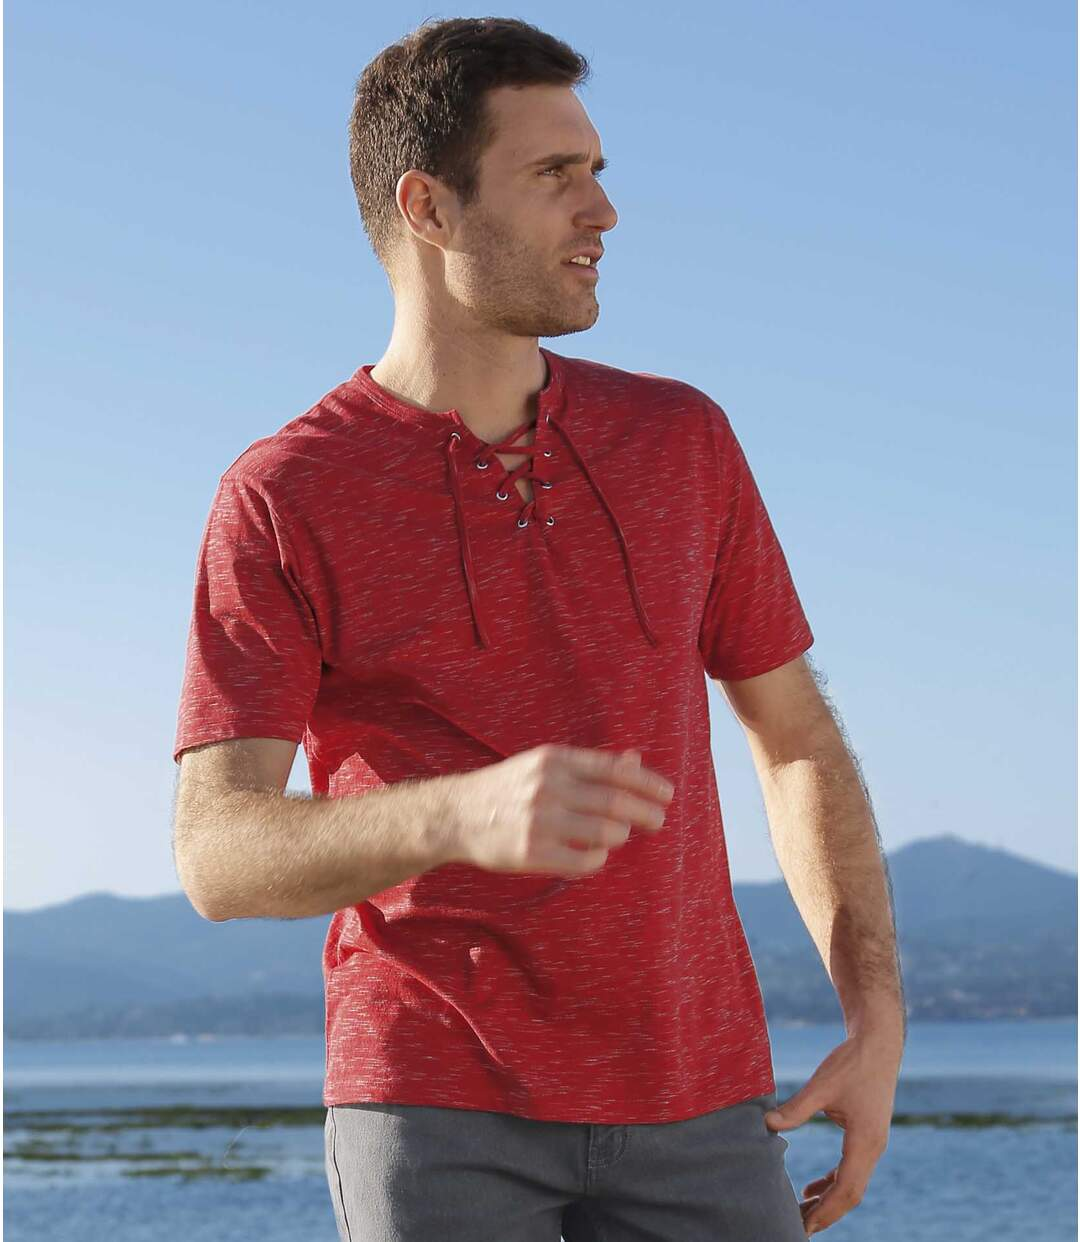 Pack of 2 Men's Lace-Up T-Shirts - Ecru Red